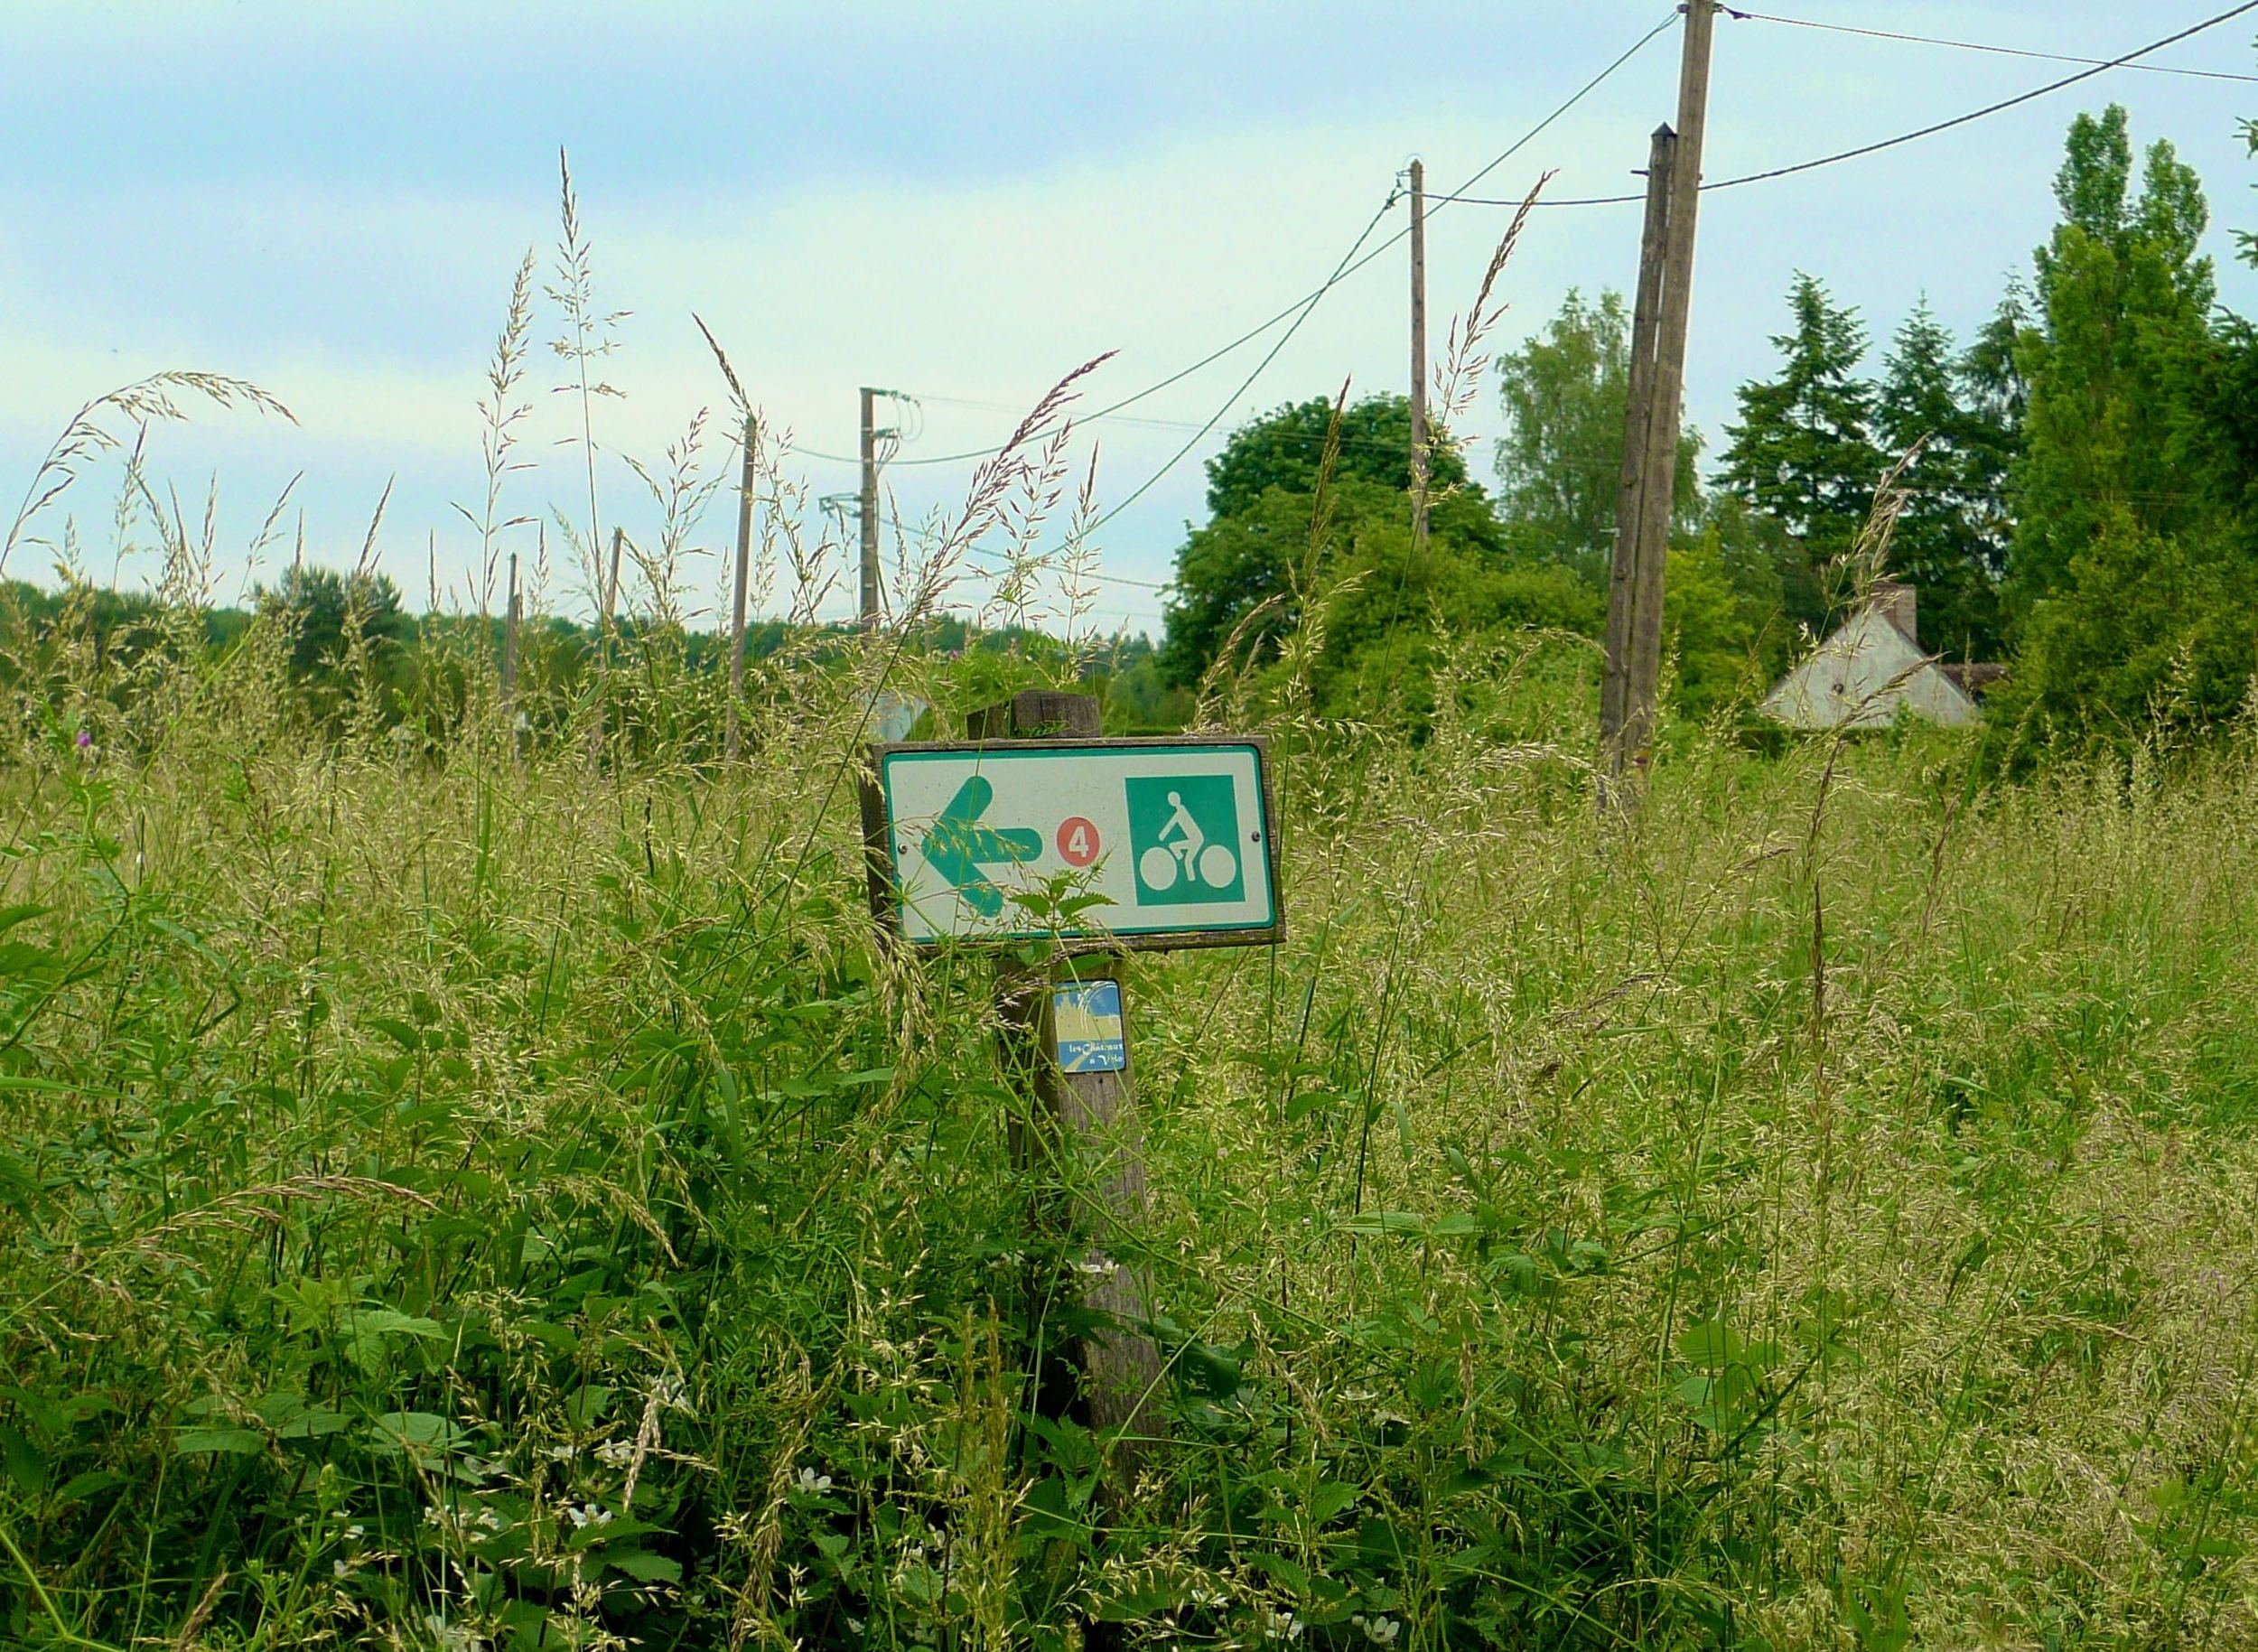 ONE OF THE MANY LOIRE A VELO SIGNS WE FOLLOWED